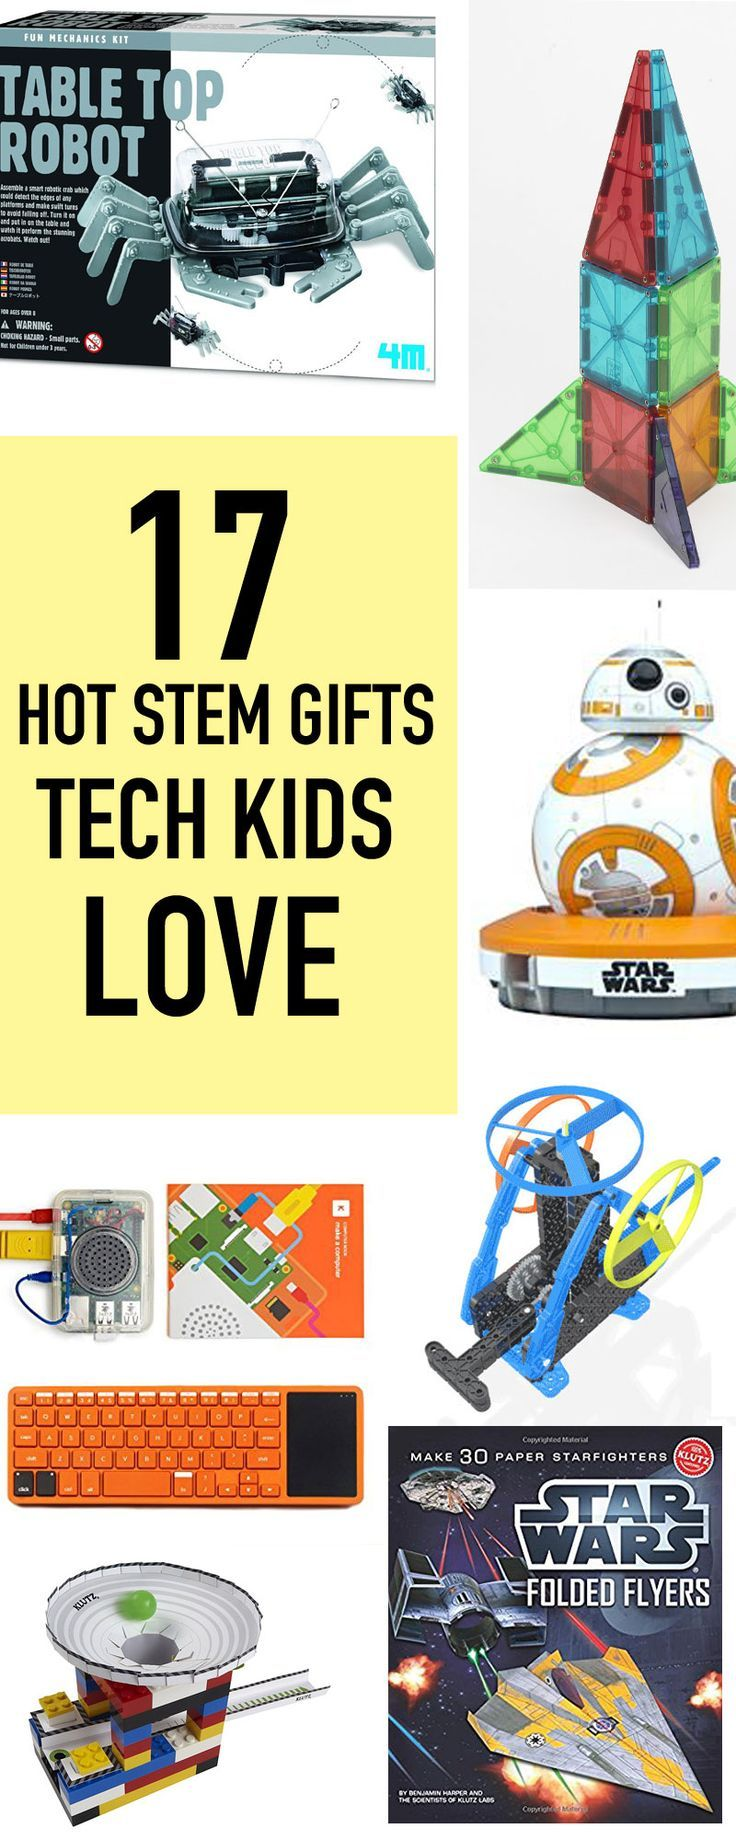 GET THE COOLEST STEM GIFTS for YOUR TECH KIDS this CHRISTMAS! Here's a list of the top selling tech toys that teach kids! 5 star rated, top-selling gifts kids adore!